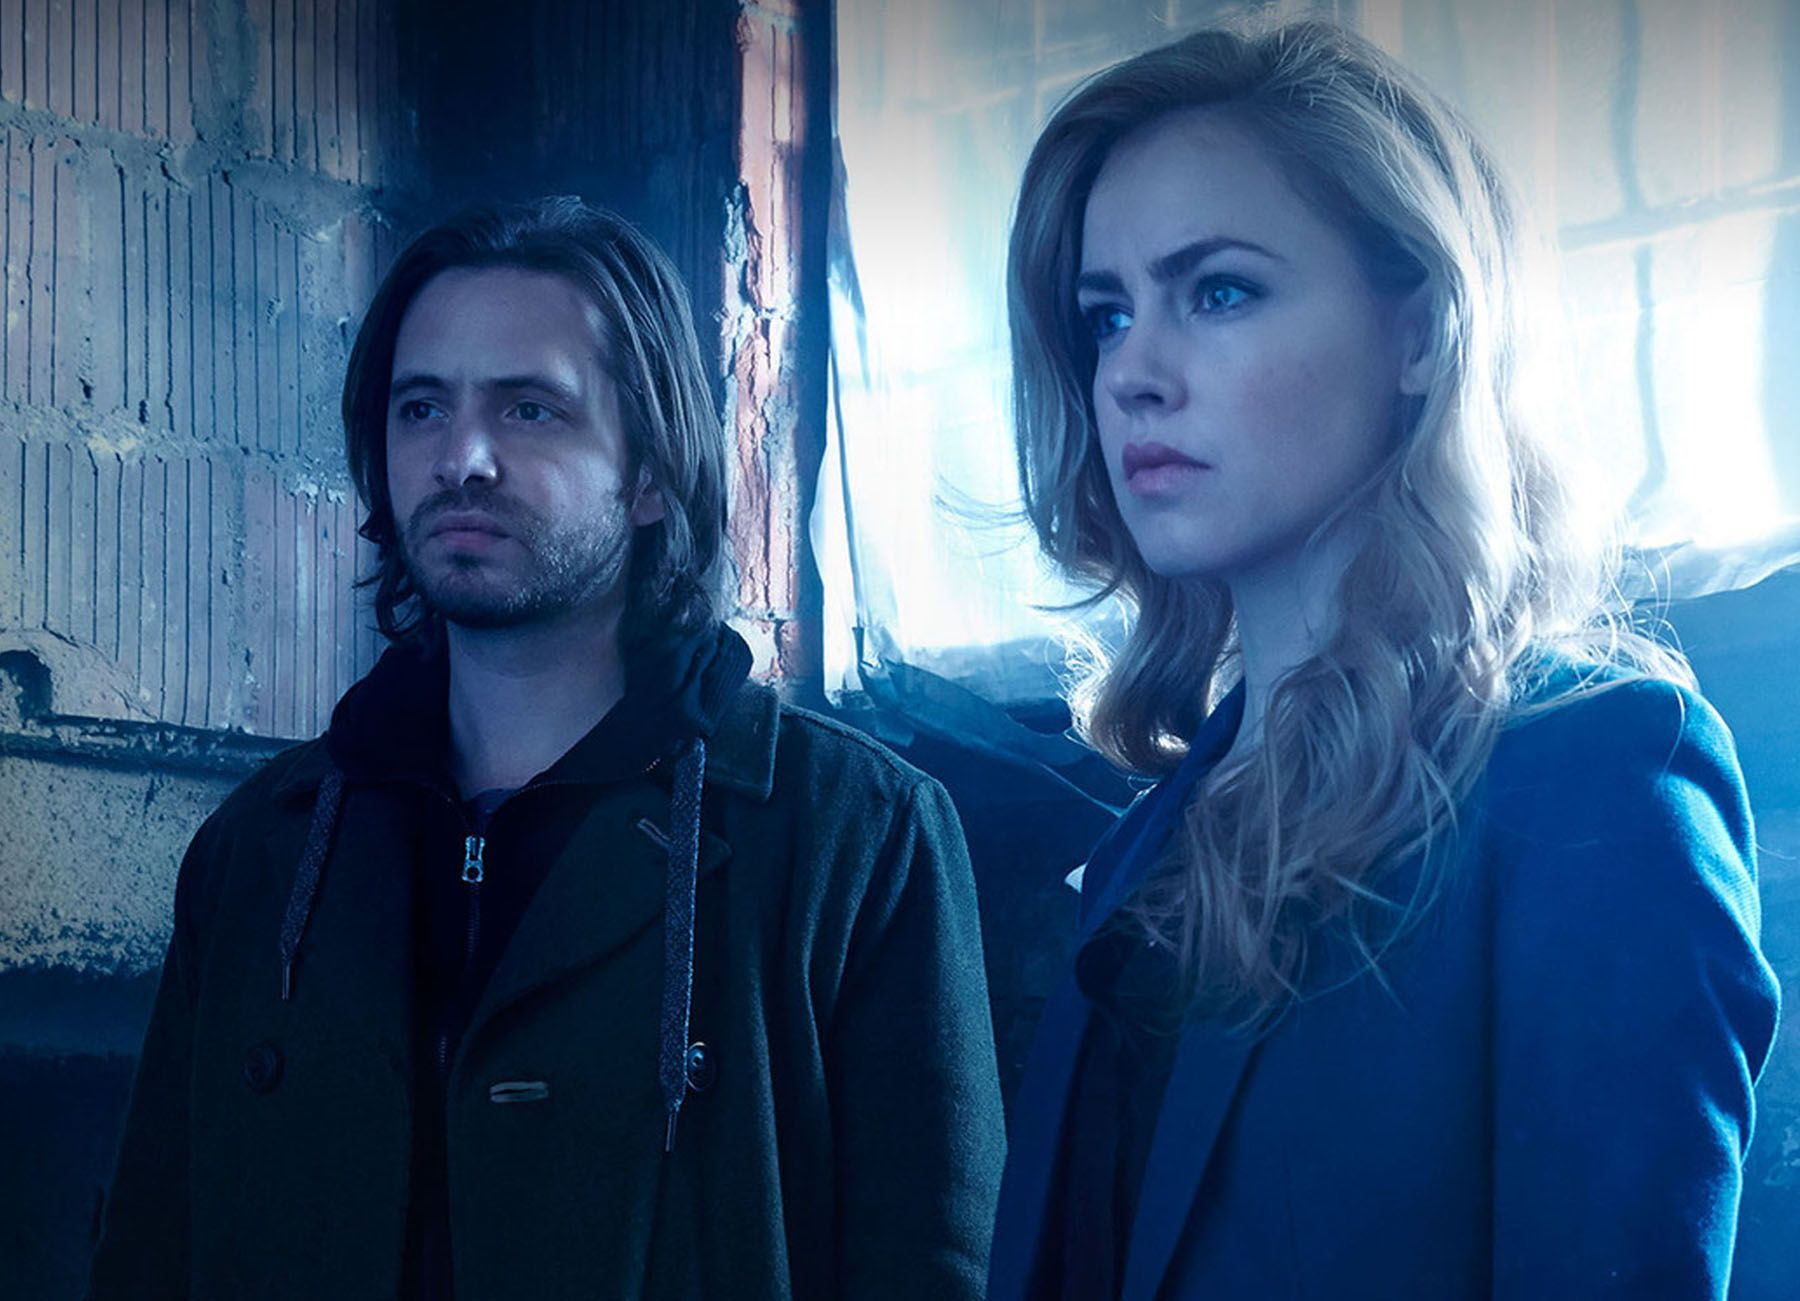 12 Monkeys Star Aaron Stanford Talks About The Syfy Series